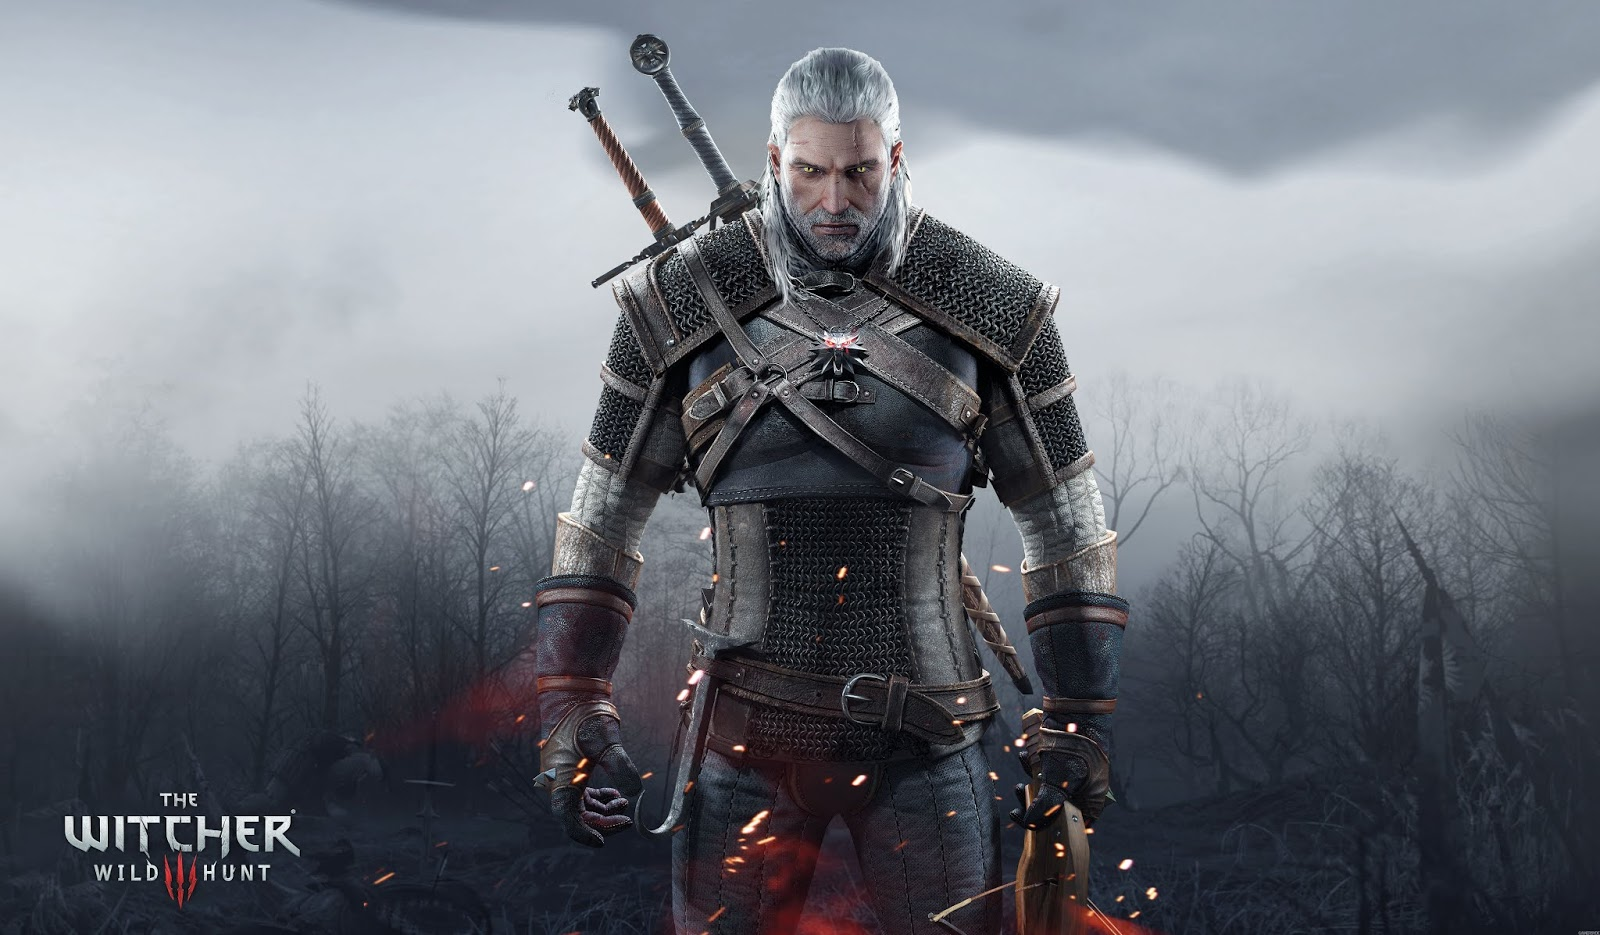 Witcher-wallpaper-free-download-ultra-4k